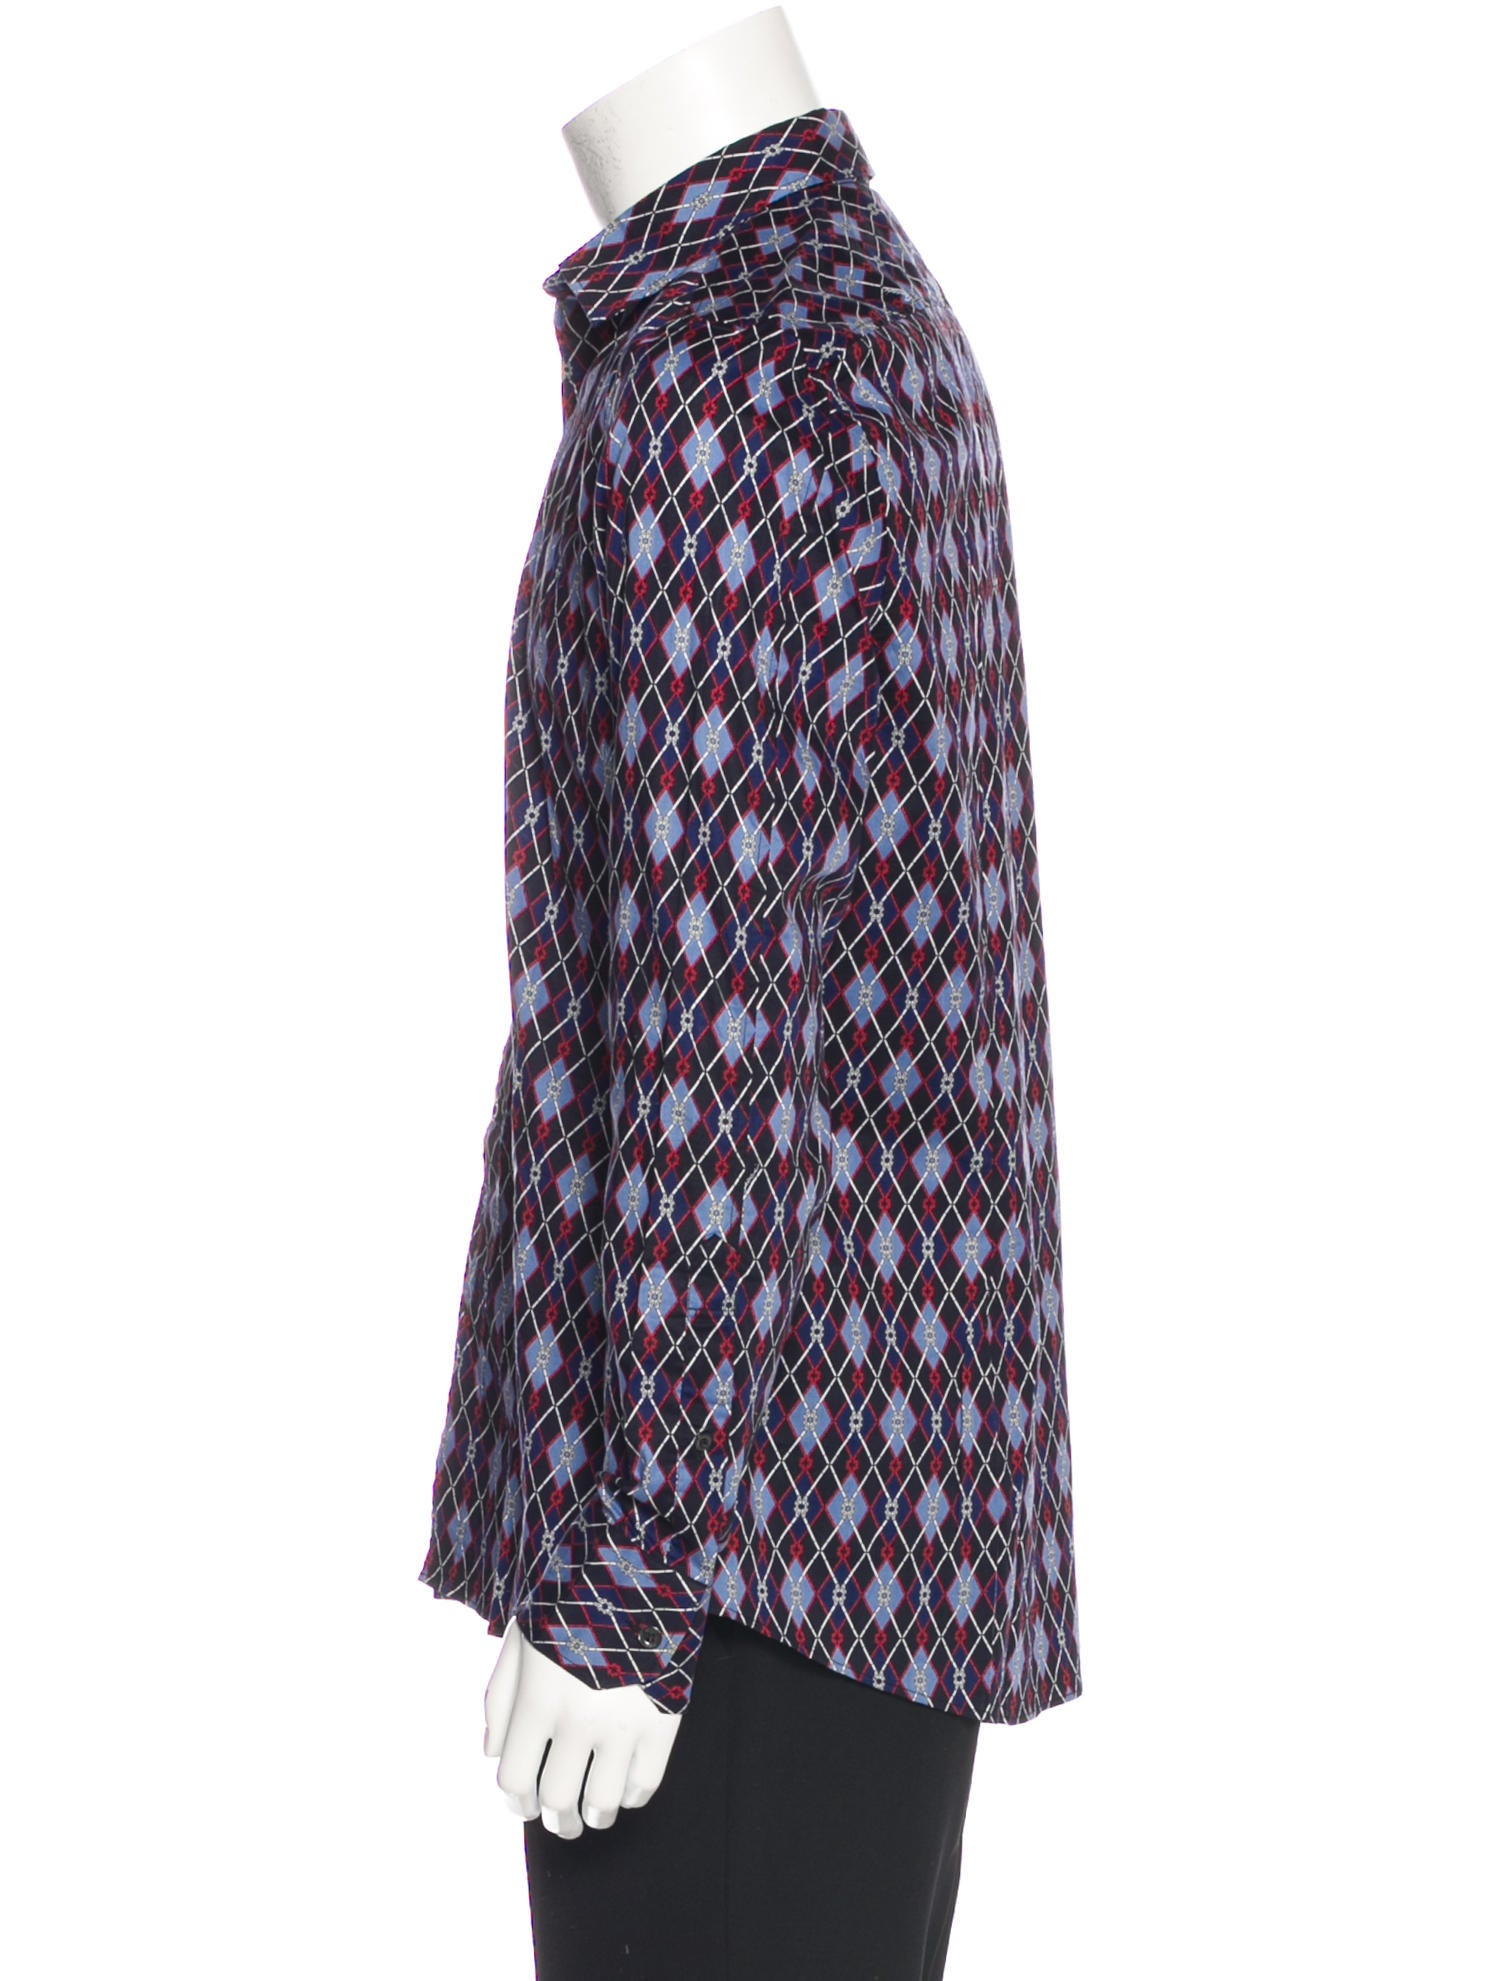 Women's Clothing Argyle. In the event that you are seeking for Argyle, you have certainly come to the right place. There are truly a great deal of places to purchase from on the web, yet you have indeed settled upon our website and we appreciate this considerably.